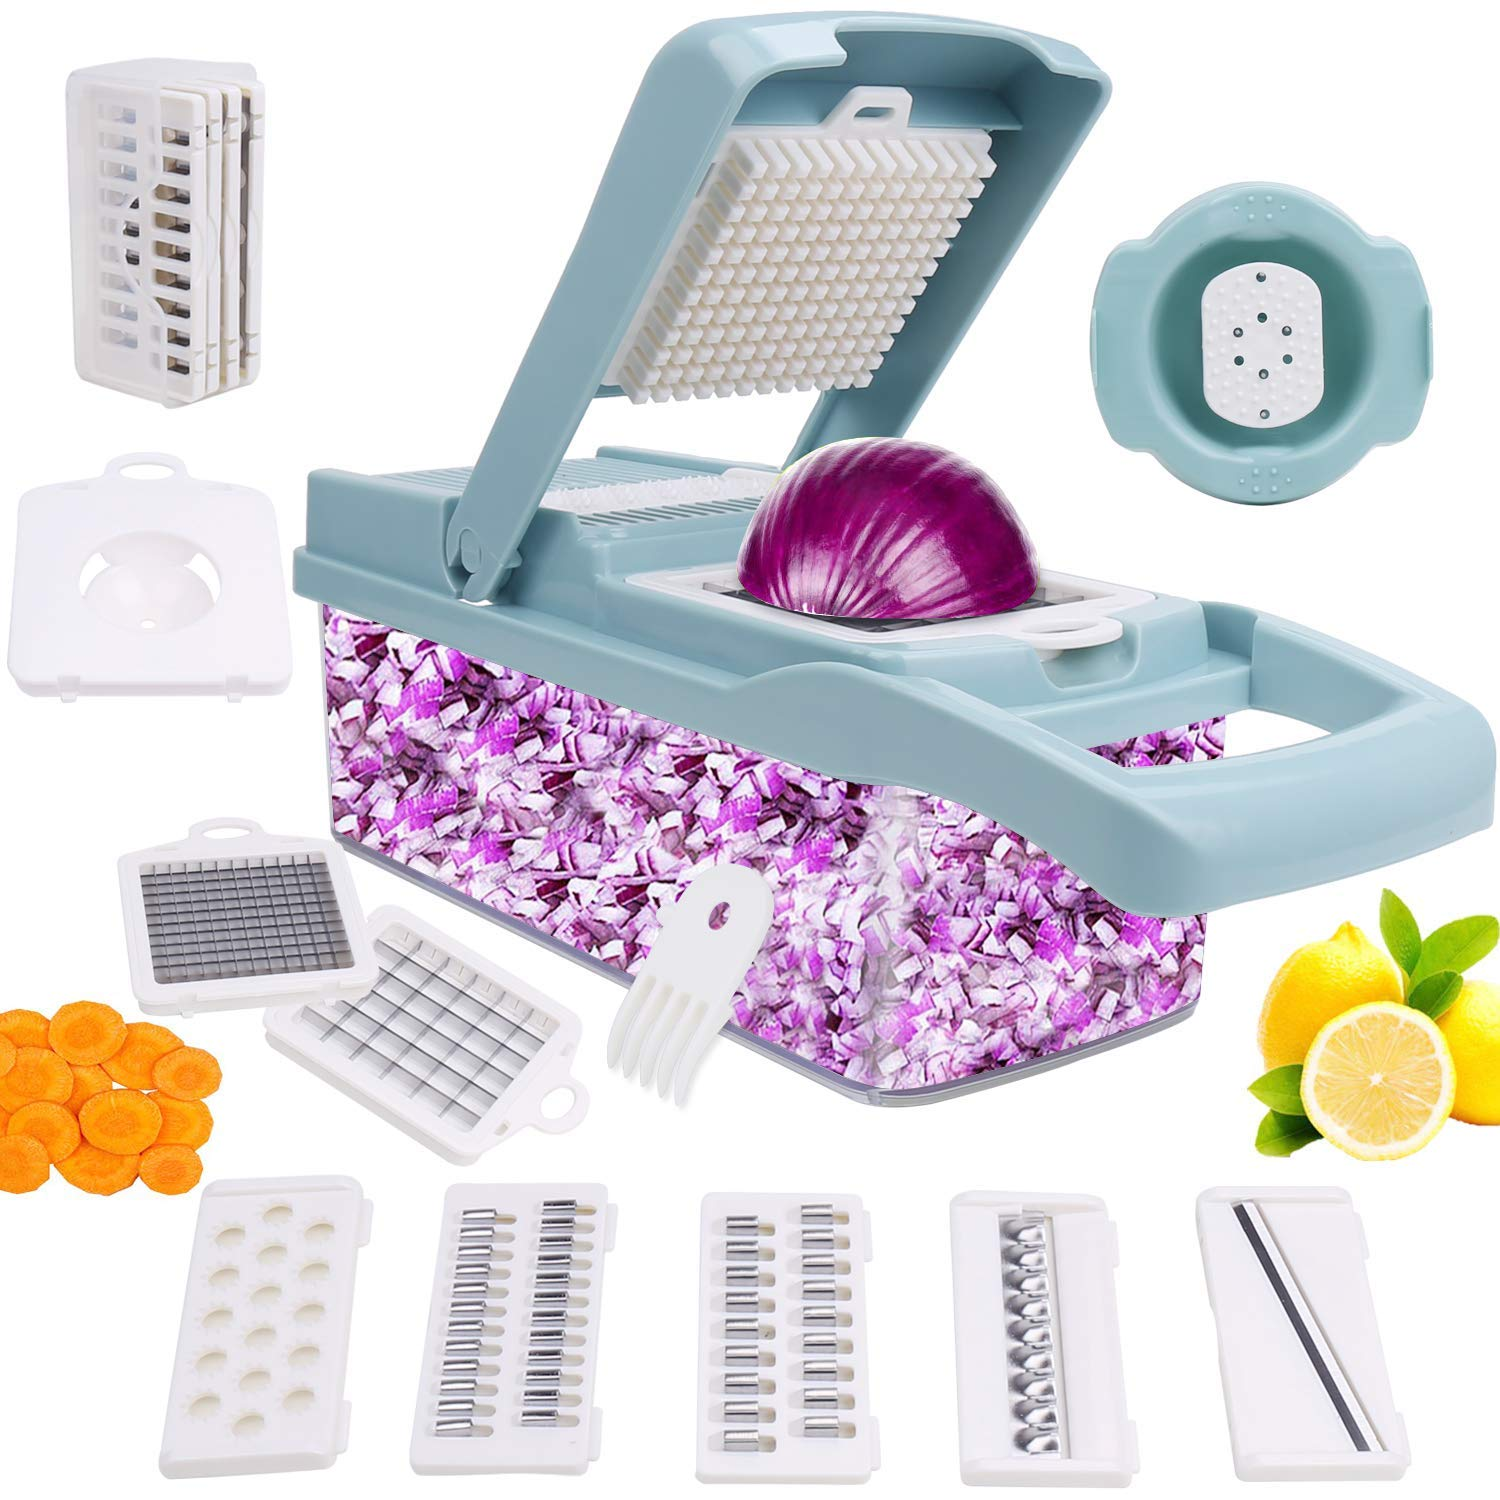 Vegetable Chopper,Fruits Cutter,12-in-1 Vegetable Cutter Mandoline Slicer Food Chopper/Cutter